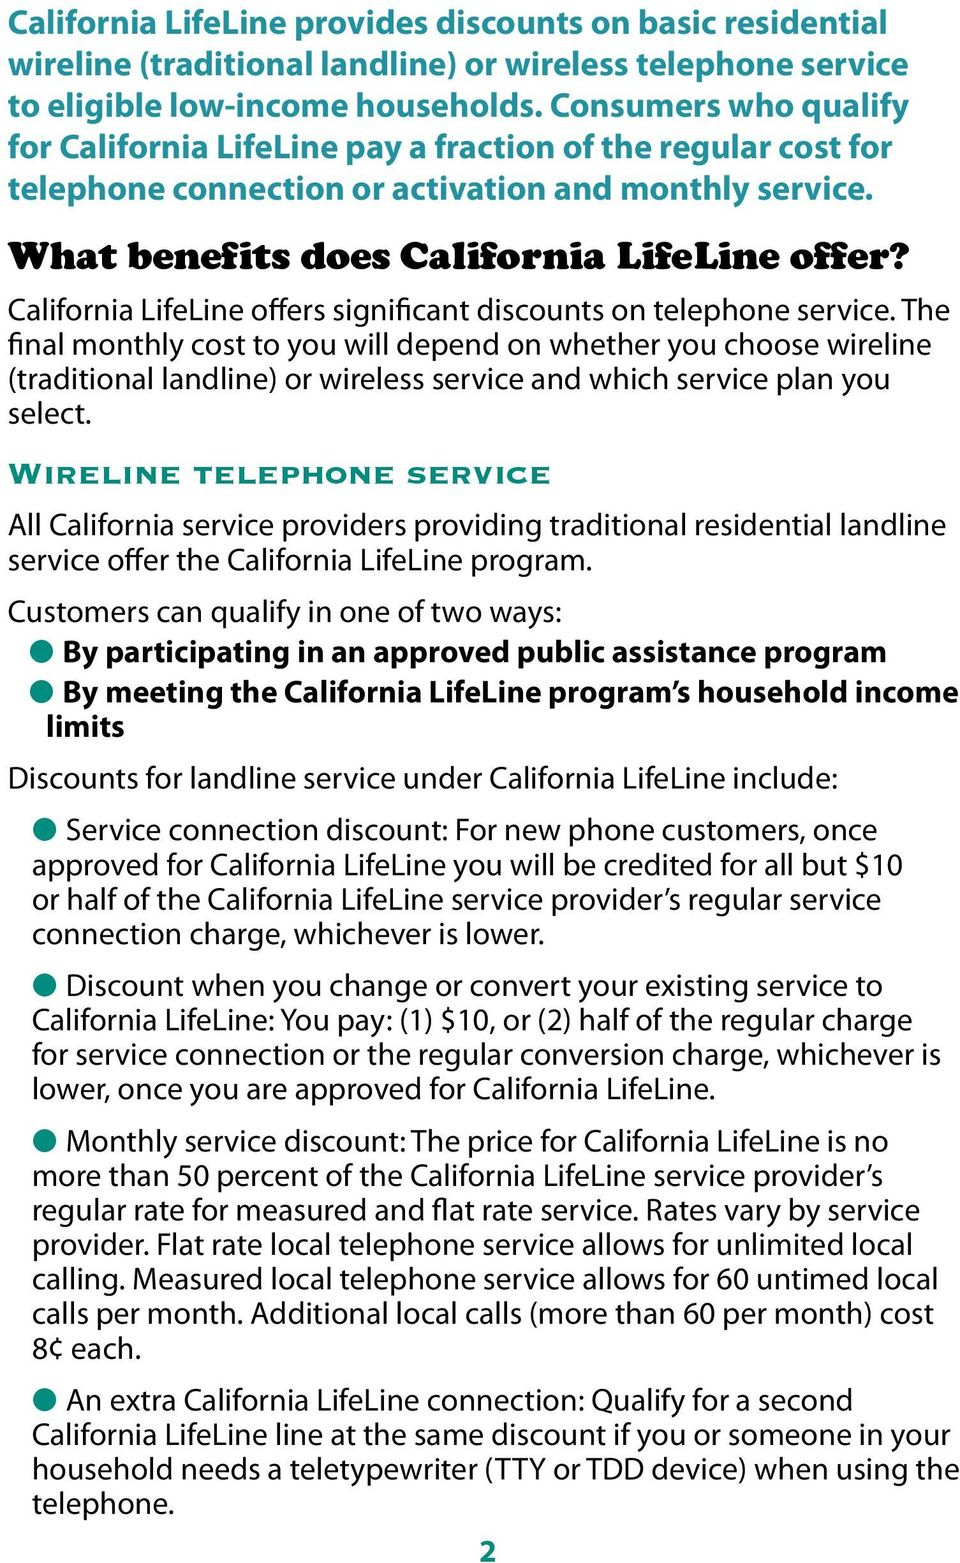 California LifeLine offers significant discounts on telephone service.